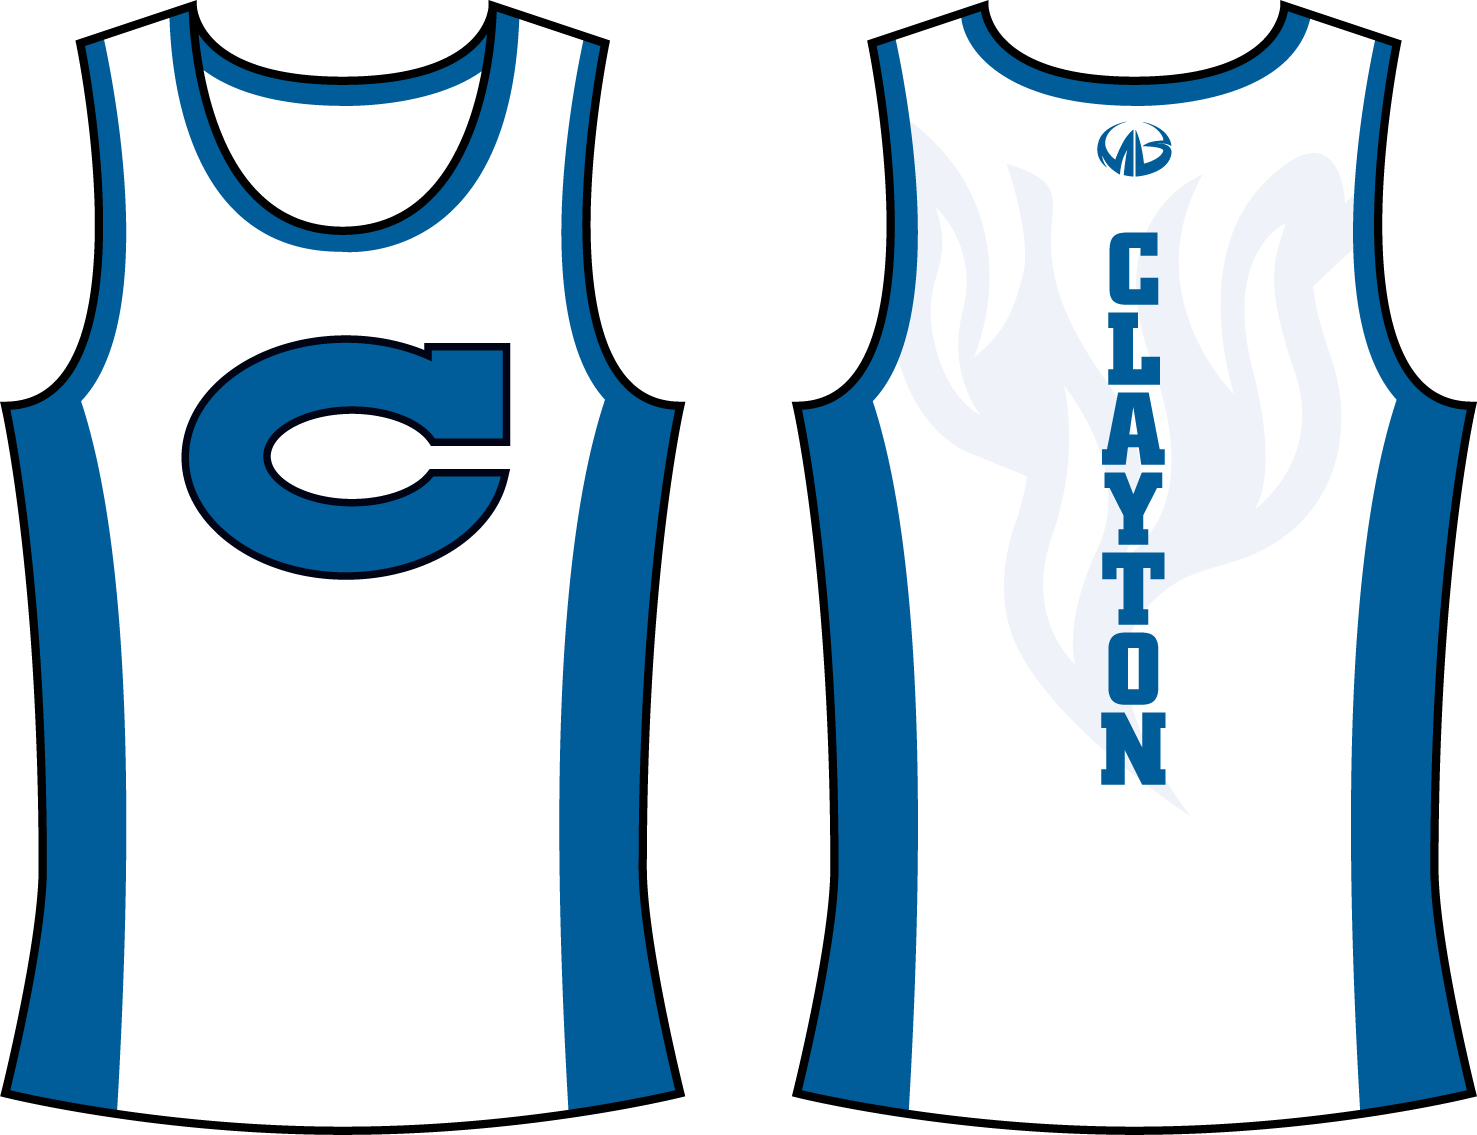 Track clipart standard. Clayton comets jersey only